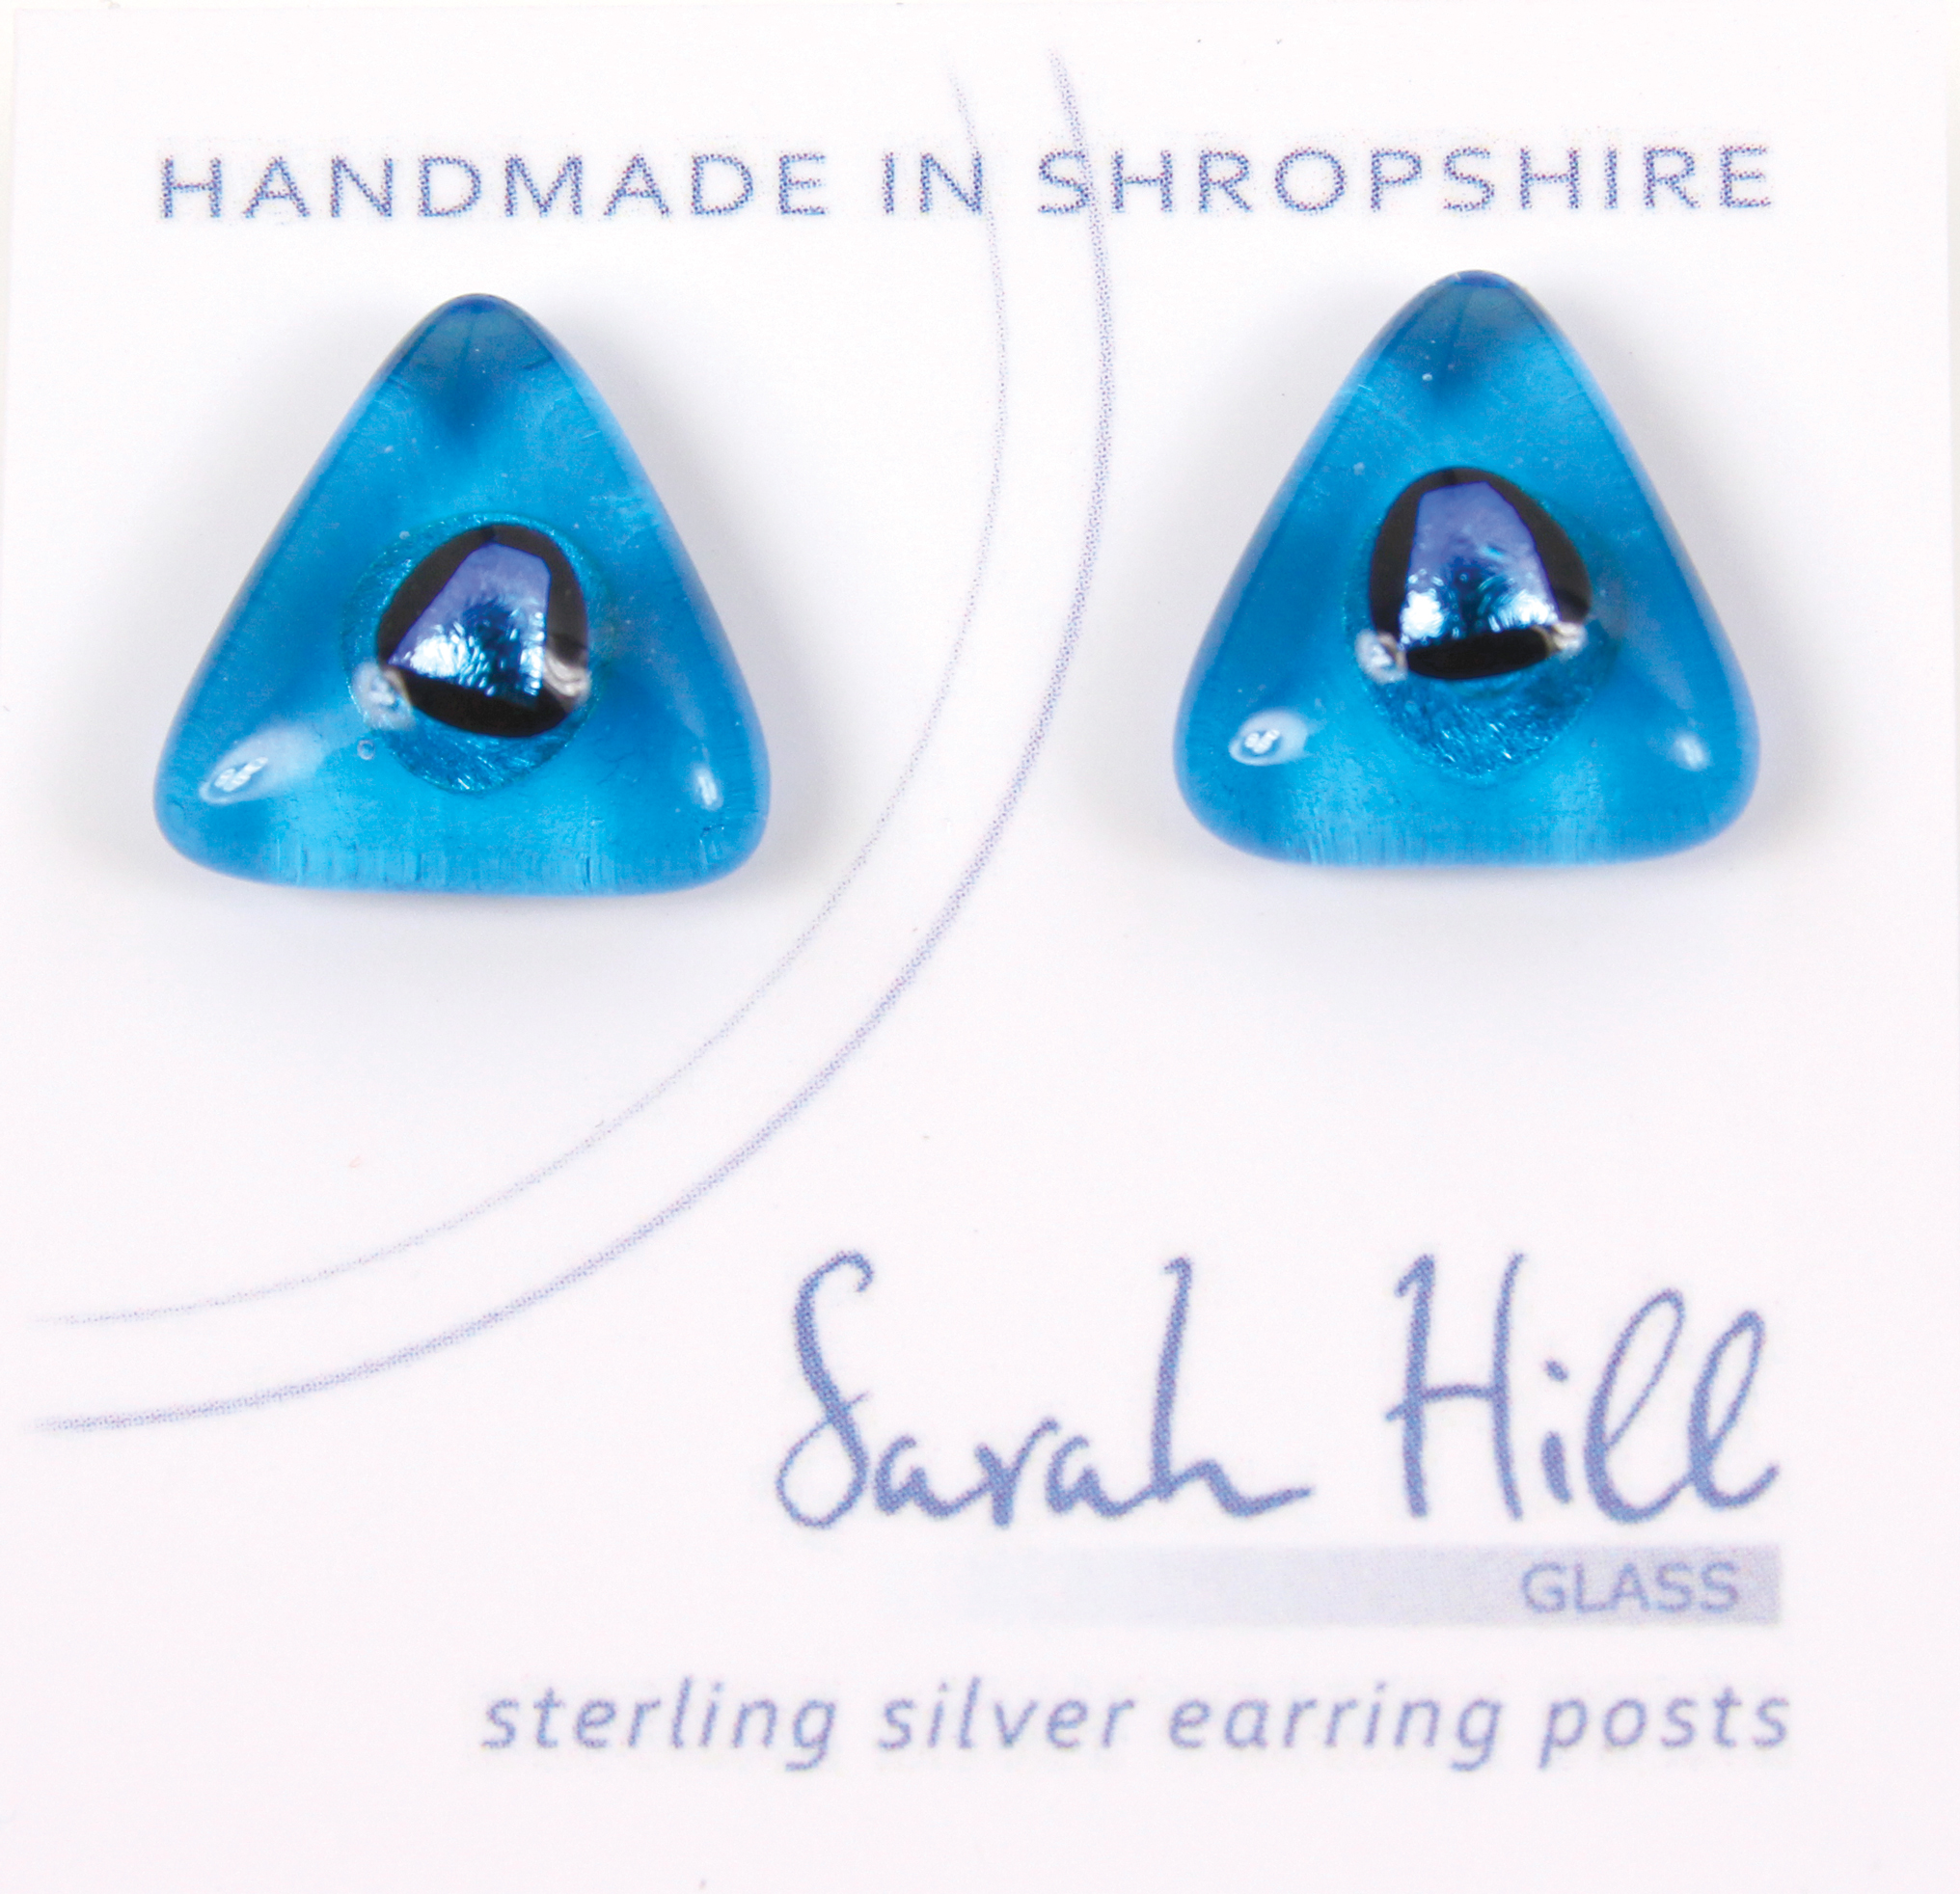 Dichroic glass jewellery uk, handmade turquoise triangle stud earrings blue dichroic spot, glass 14/15mm sides, sterling silver